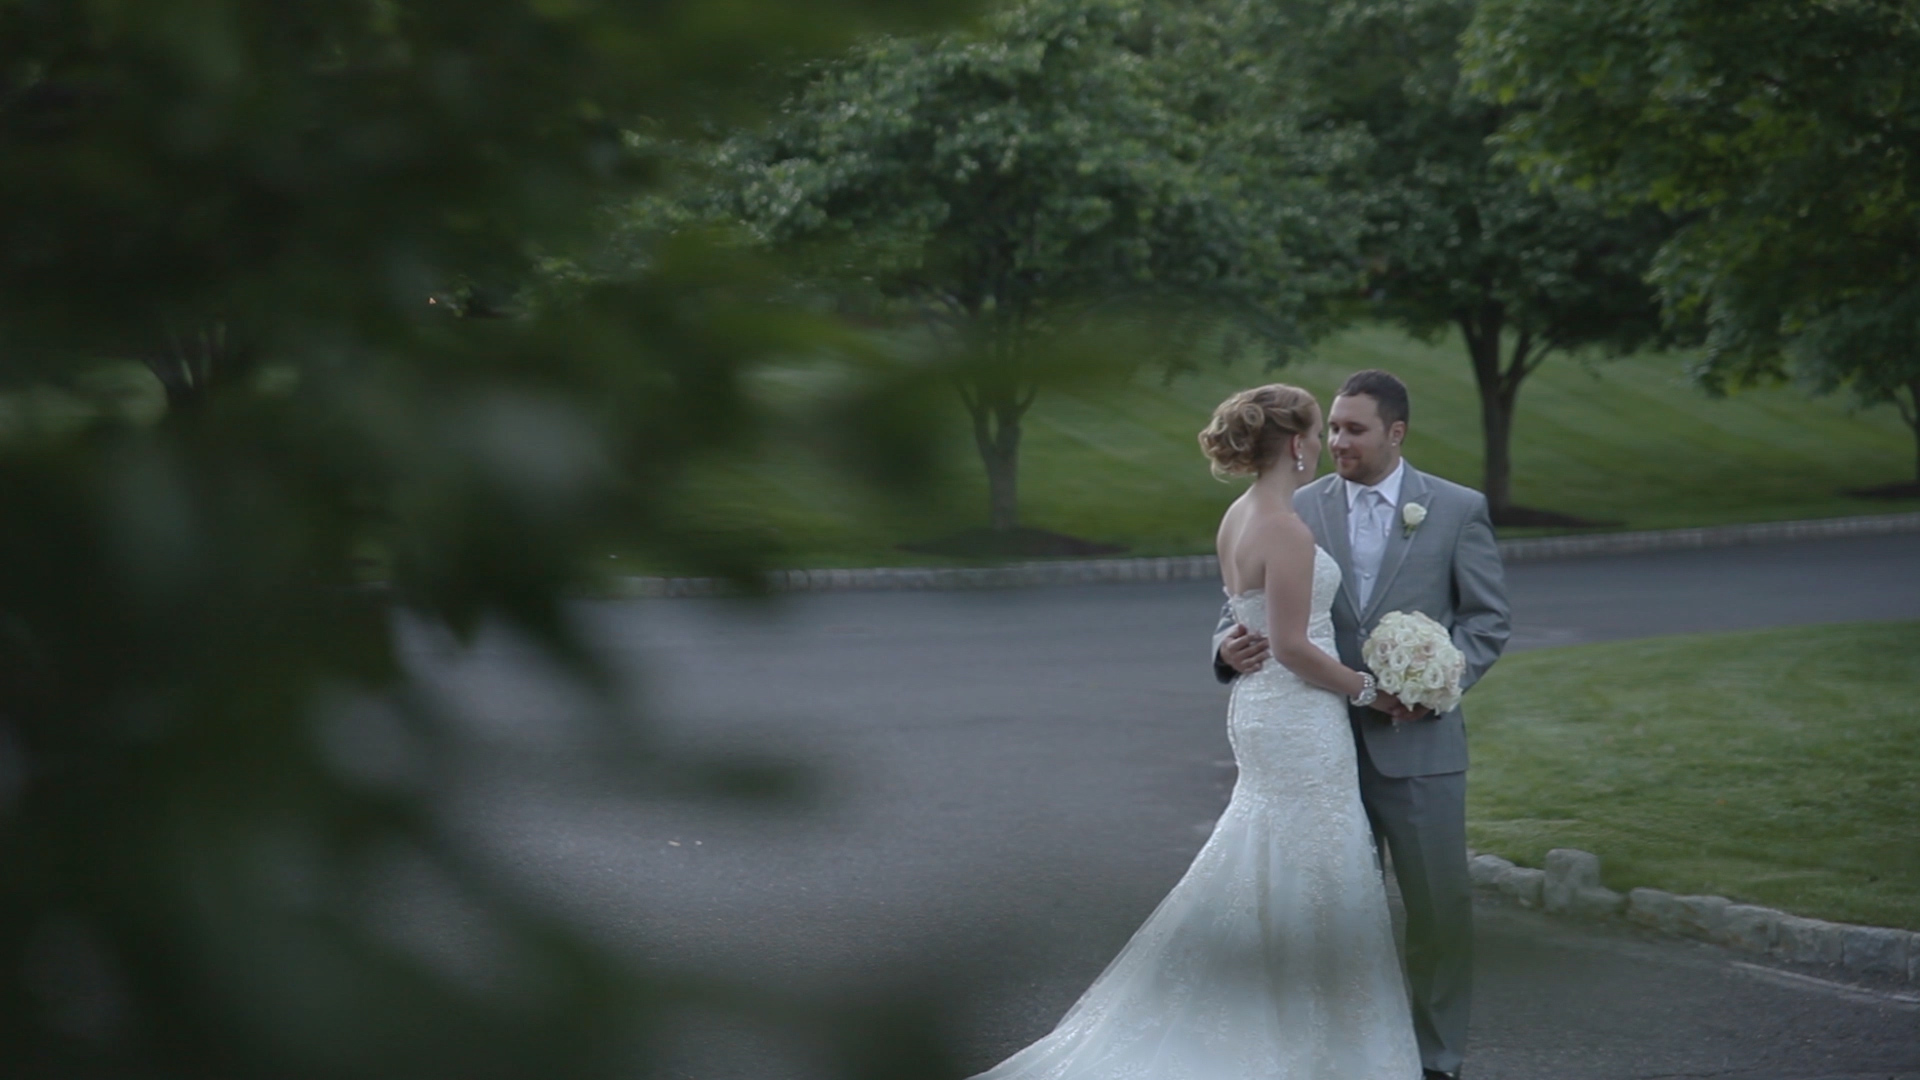 Melissa & Michael SDE Wedding Video